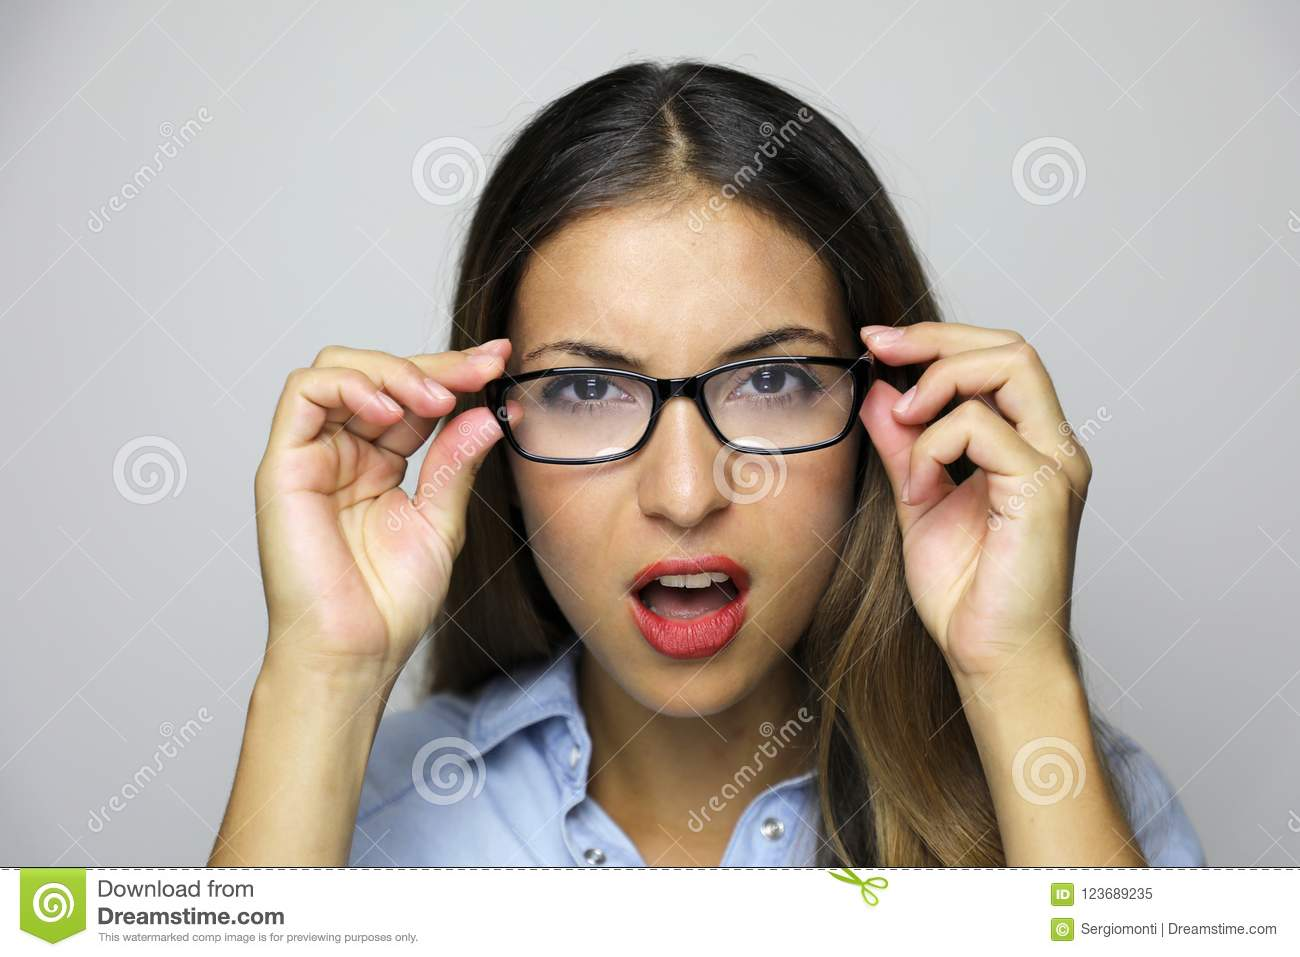 Close up portrait of a very skeptical woman or She does not see well need new glasses